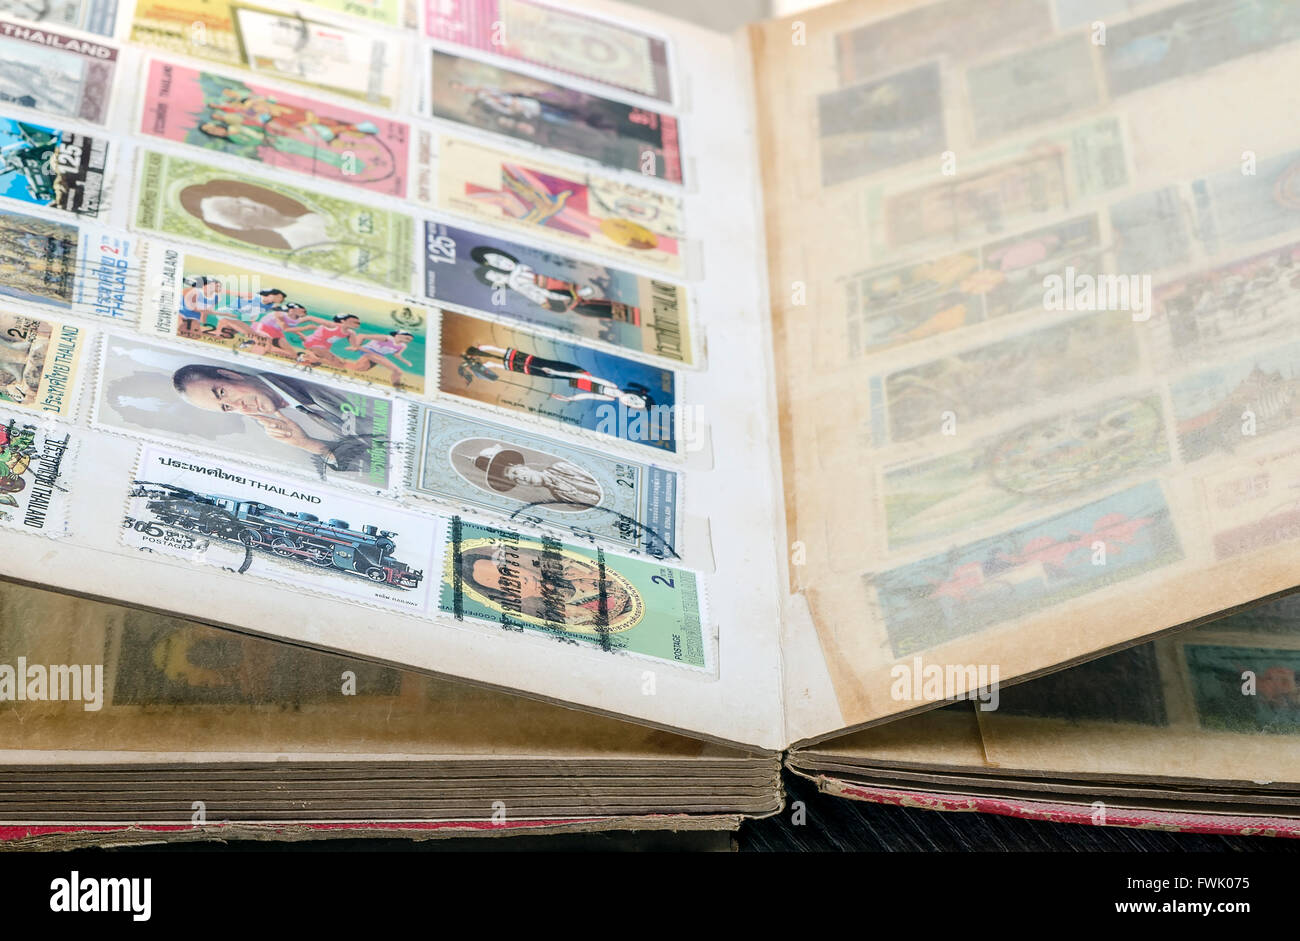 The old stamp book   in close up view,soft focus. - Stock Image